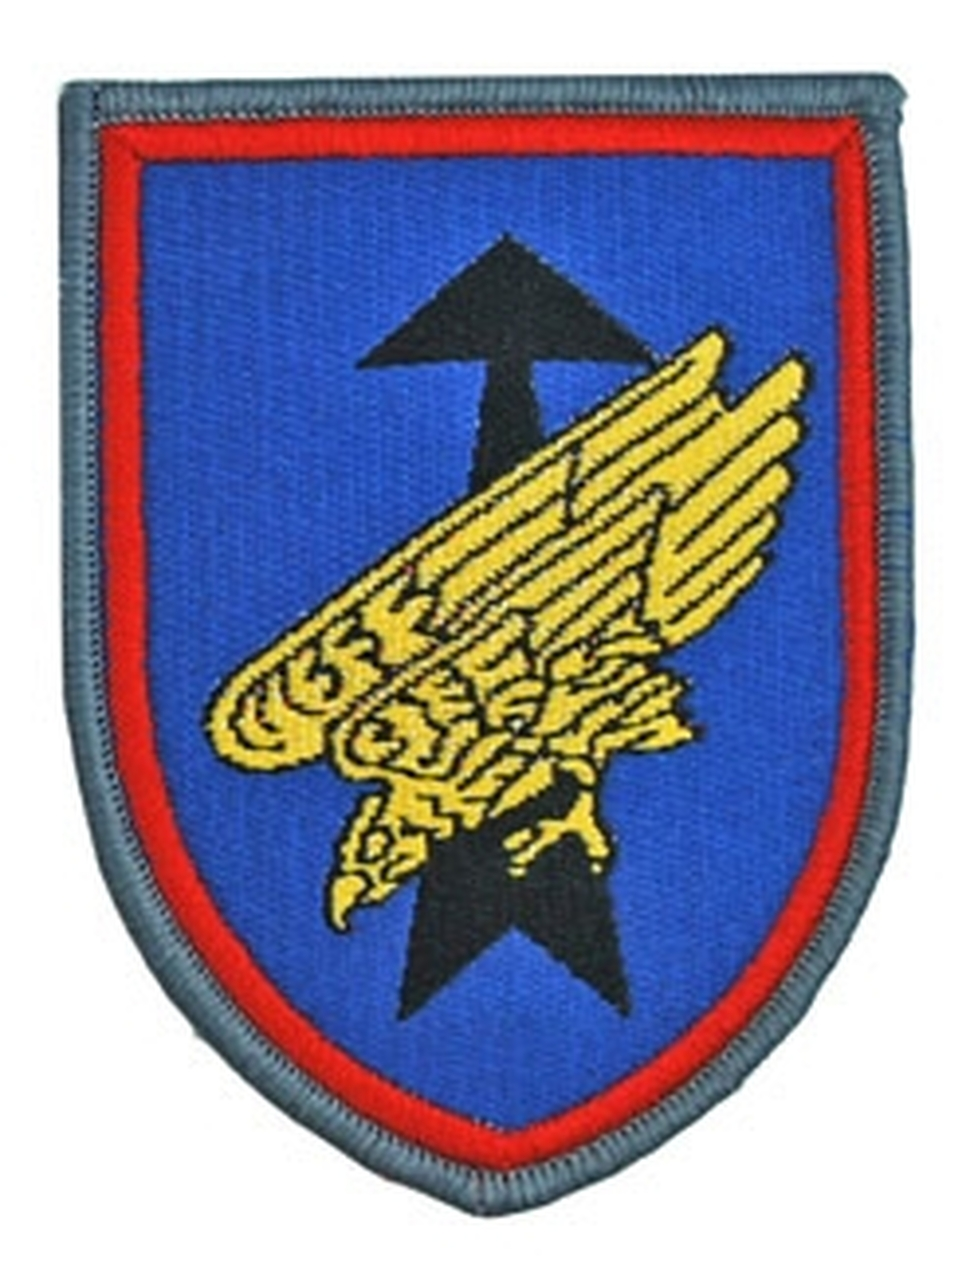 Bw 26th Airborne Brigade Shoulder Patch - New from Hessen Antique